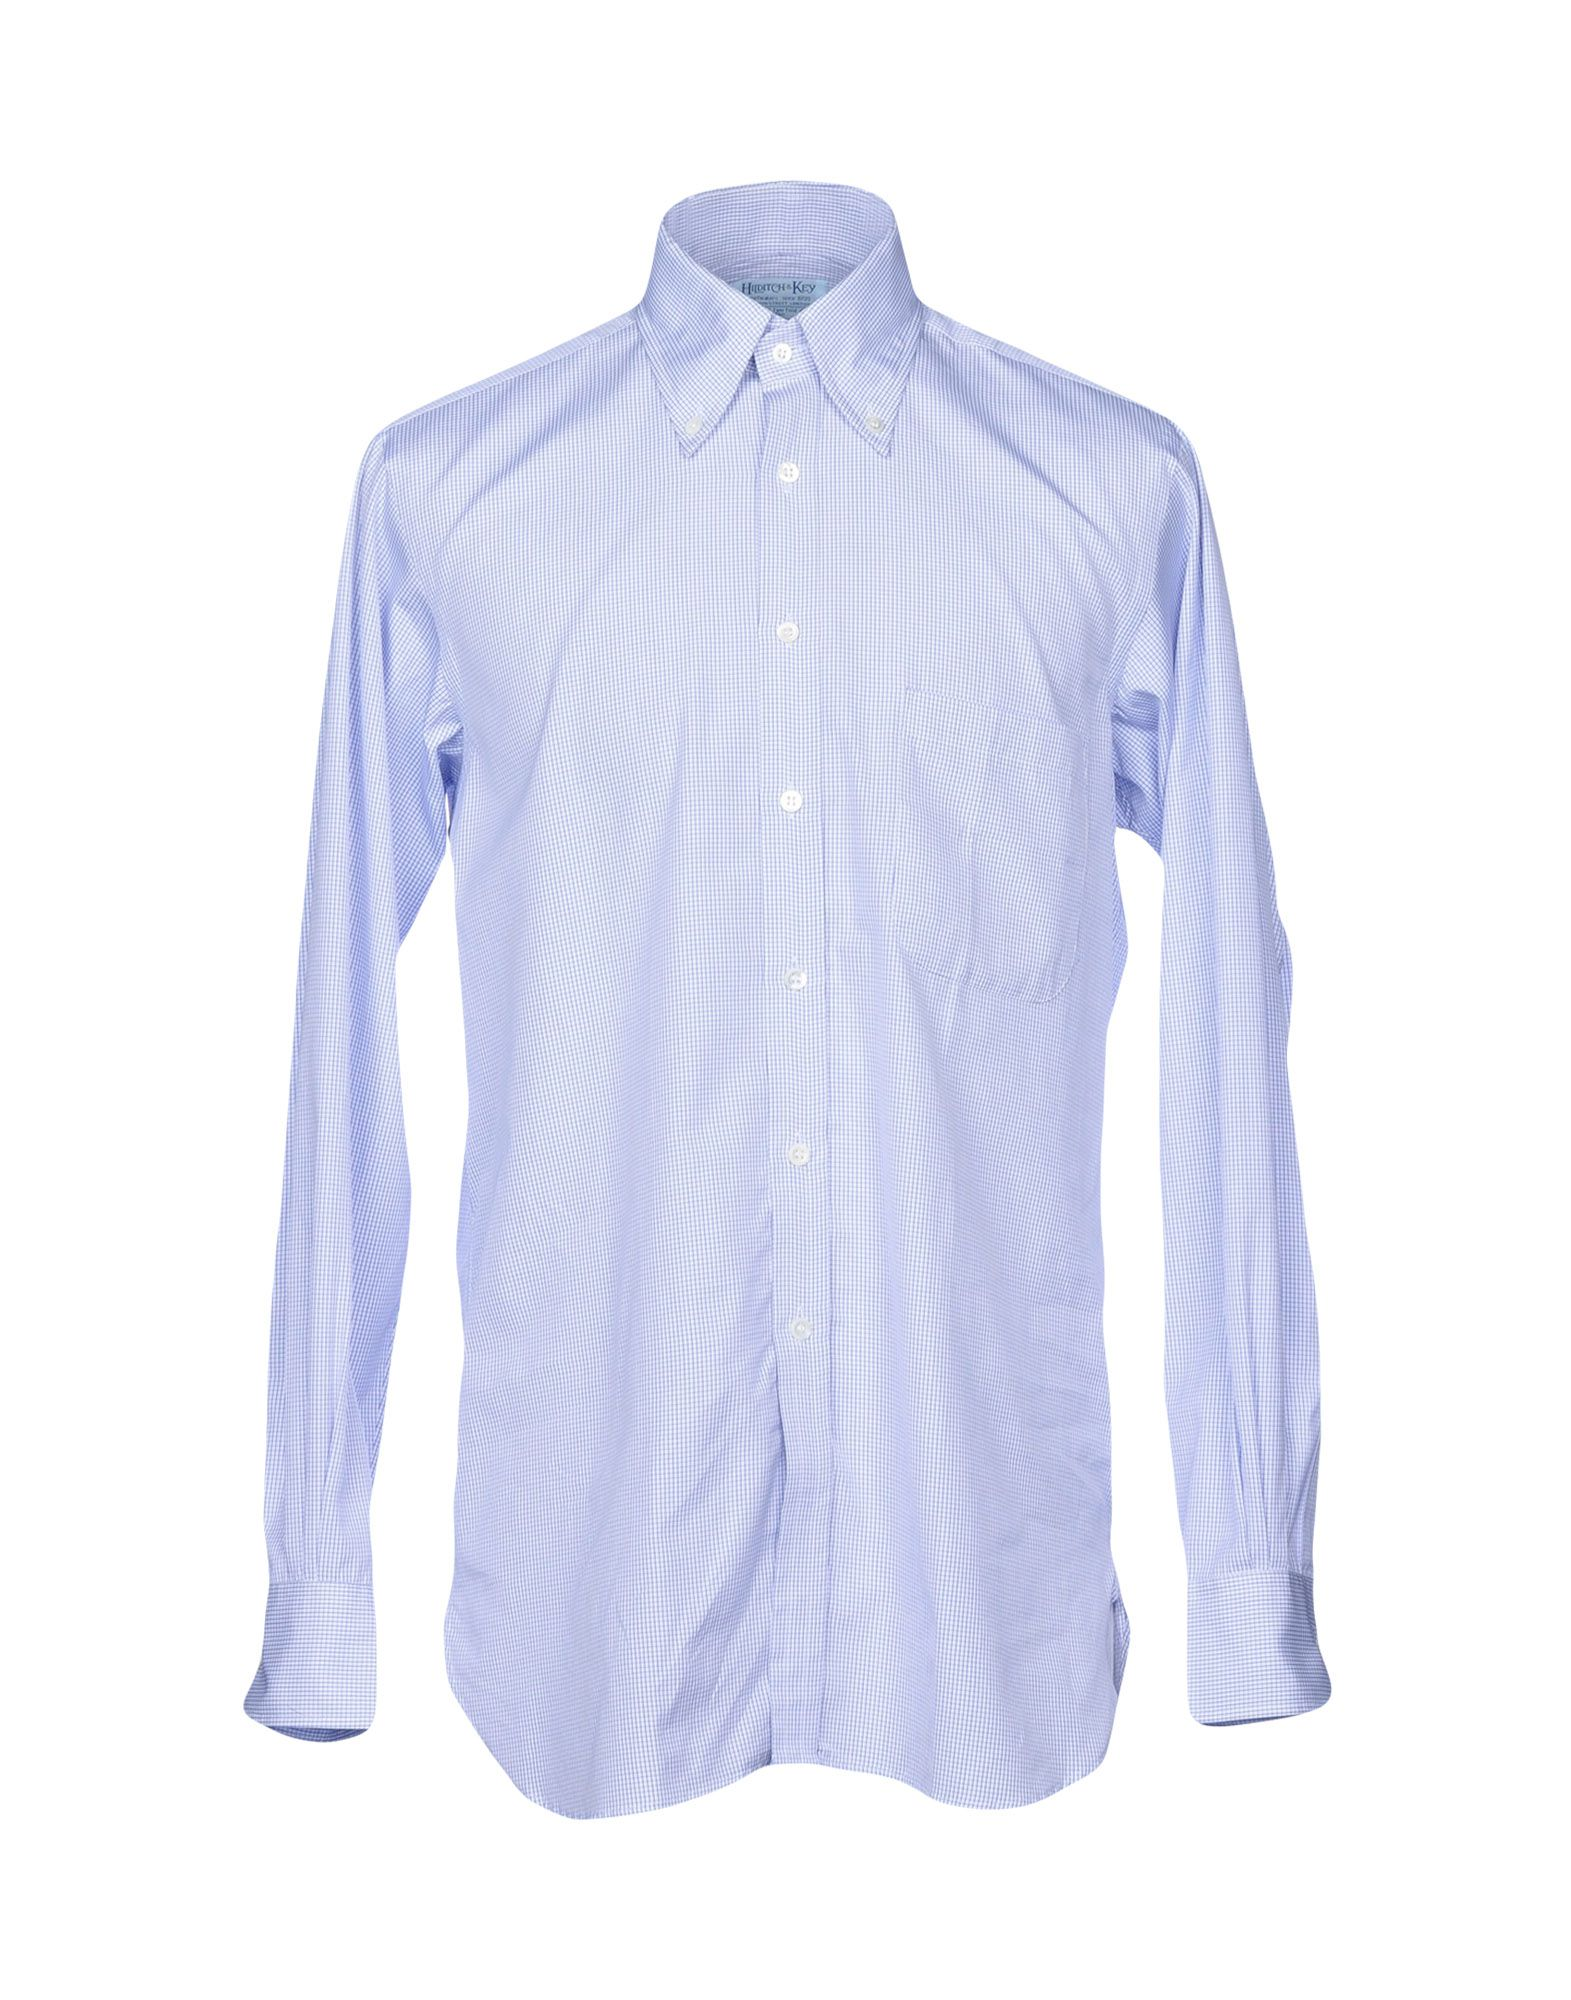 HILDITCH & KEY Checked Shirt in Blue